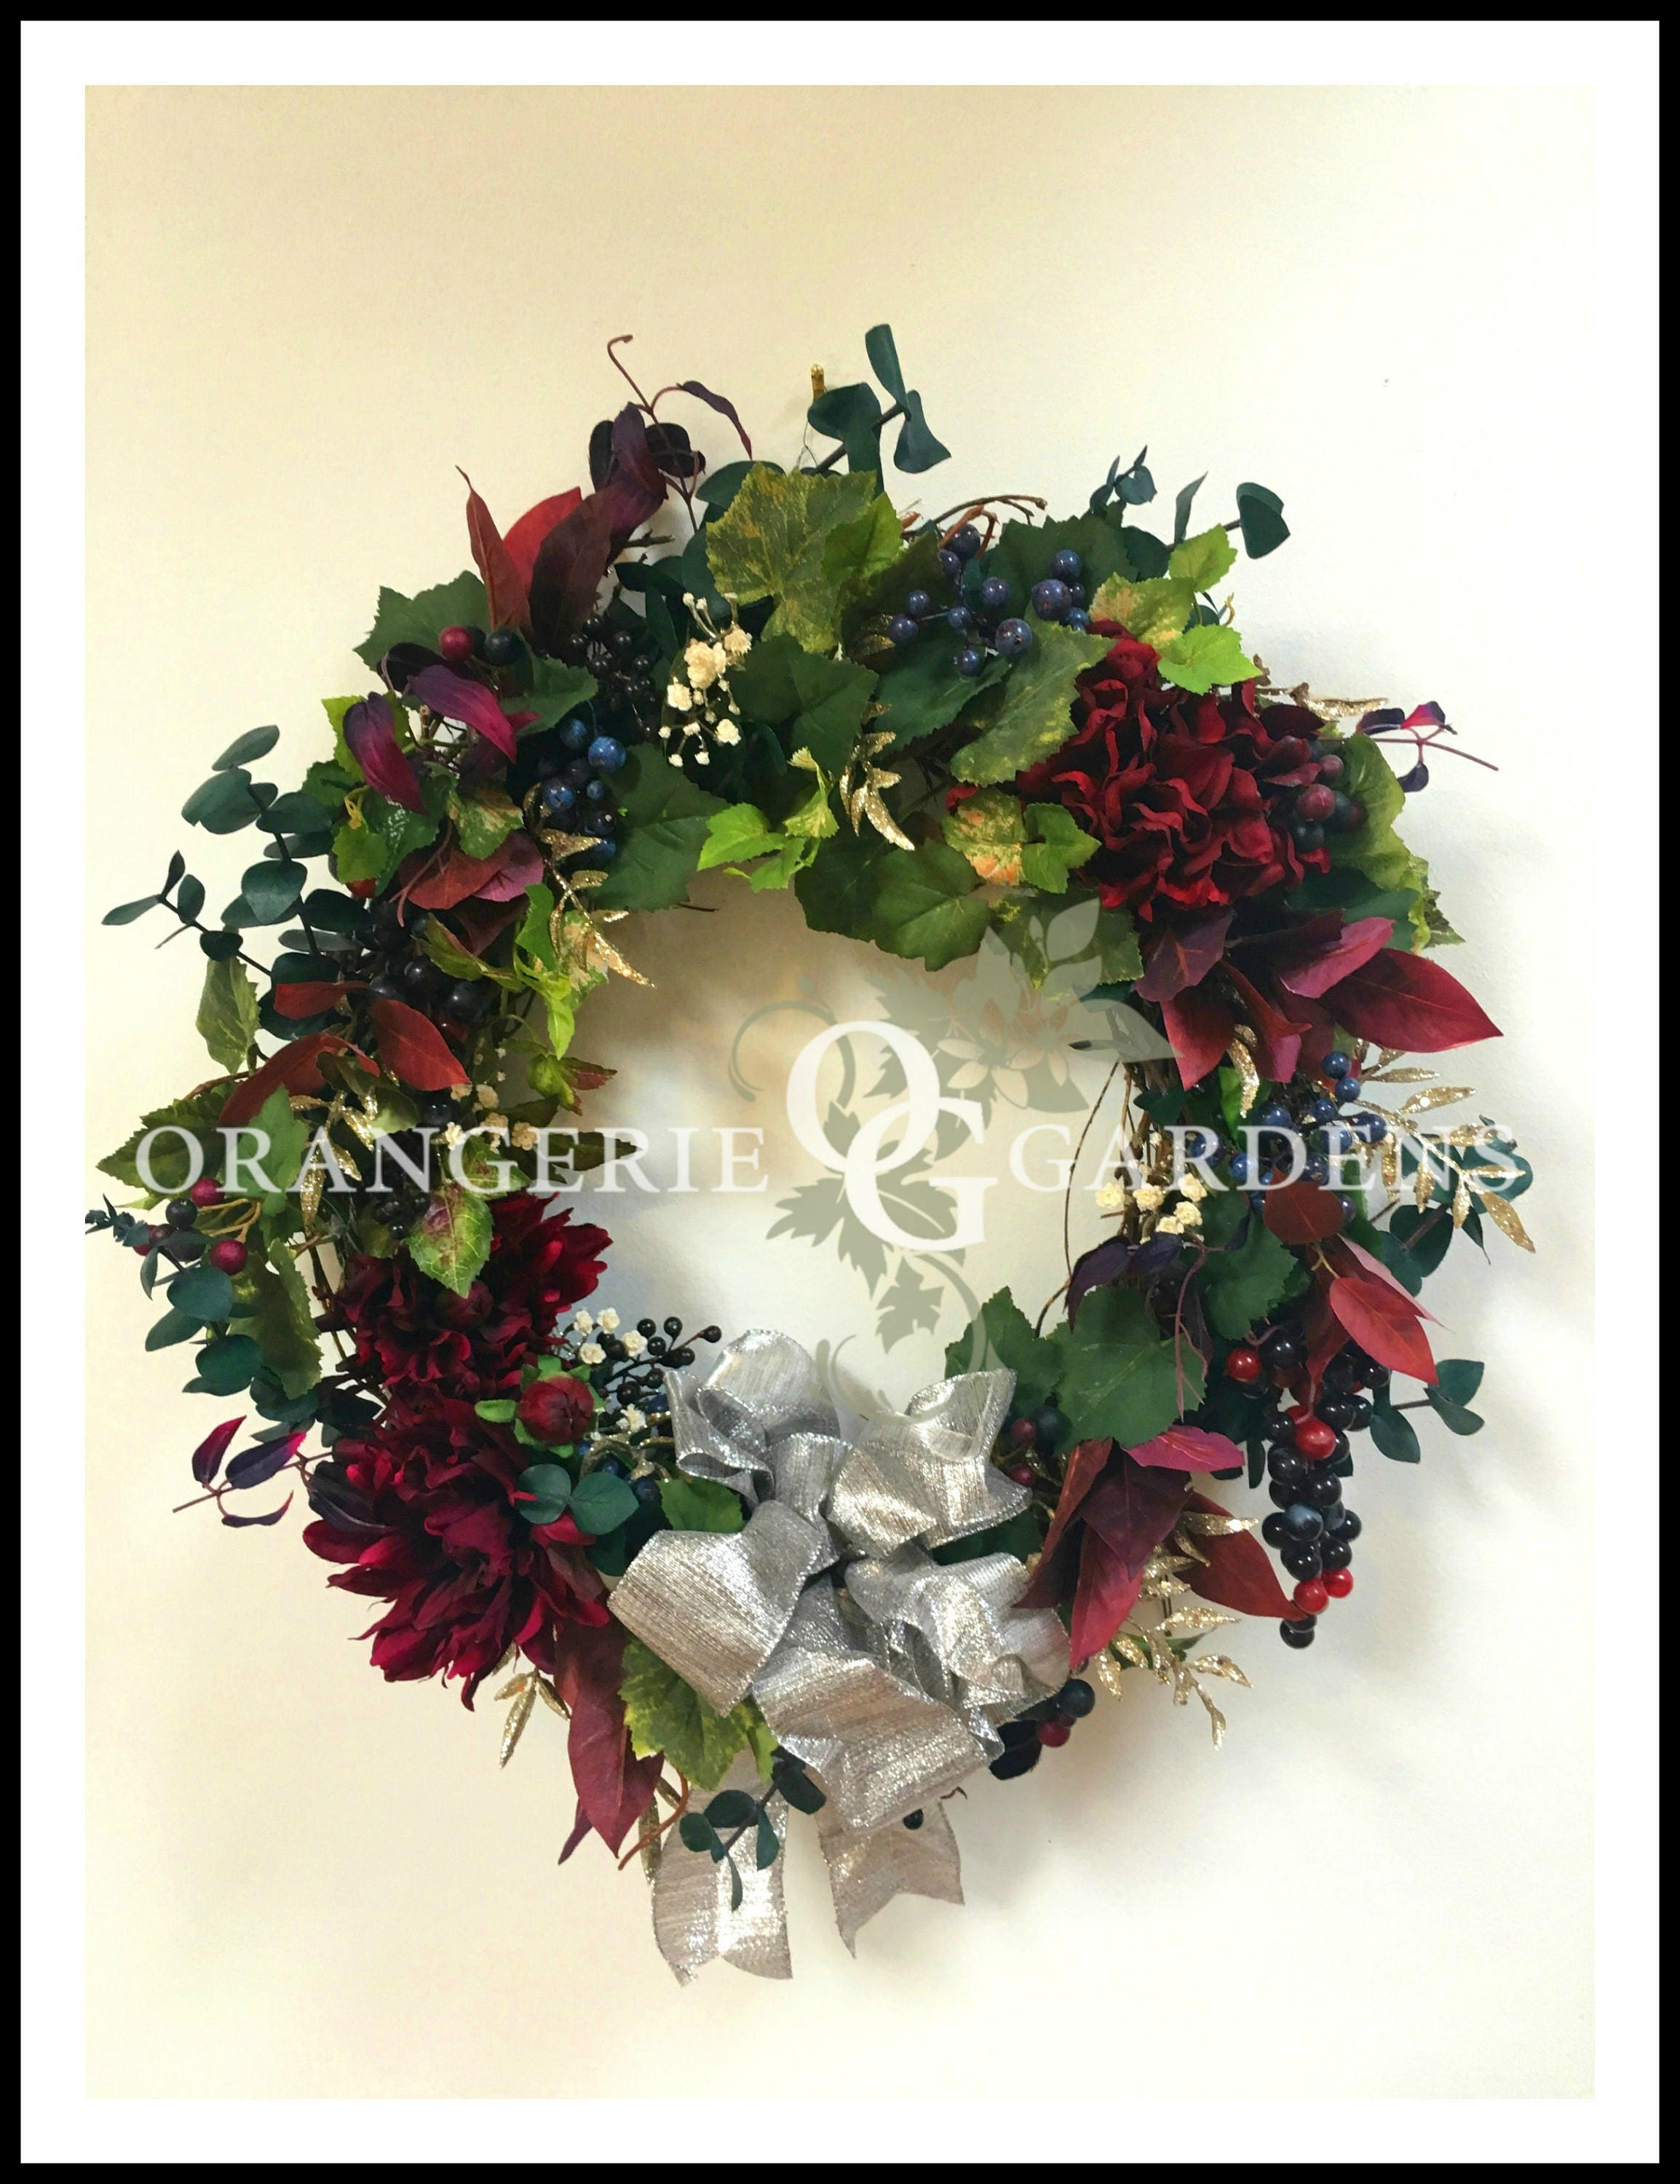 Fall Wreath For Front Door, Grape Wreath, Wreaths, Hydrangea Wreaths, Fall  Wreaths, Hydrangea Wreath For Door, Door Wreath, Hydrangea Wreath